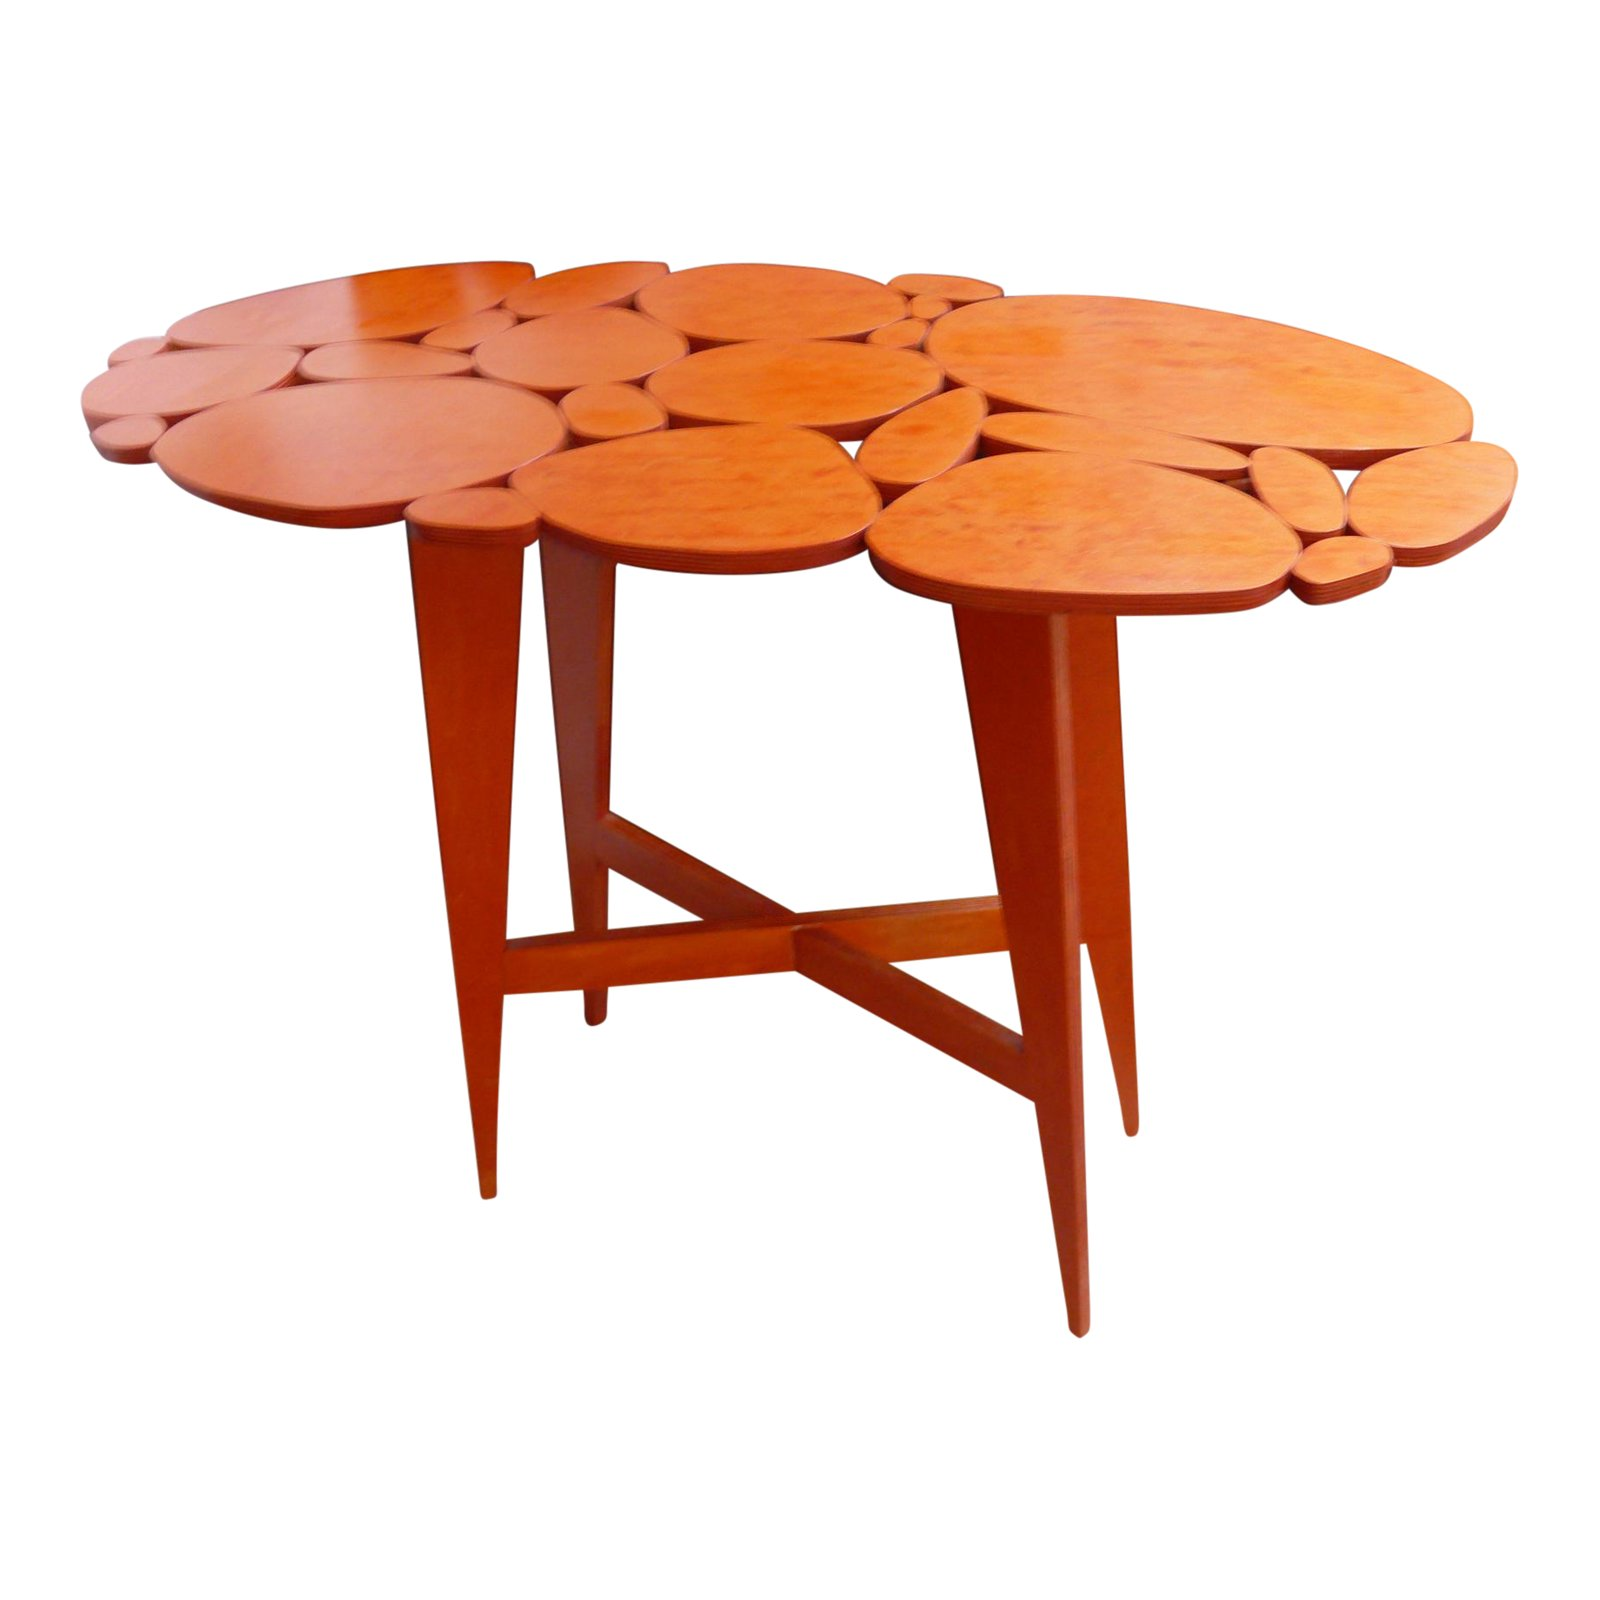 mid century modernstyle orange wood side table chairish outdoor short legs red living room decor tables for small spaces easter tablecloths tool chest ikea lounge chairs bunnings